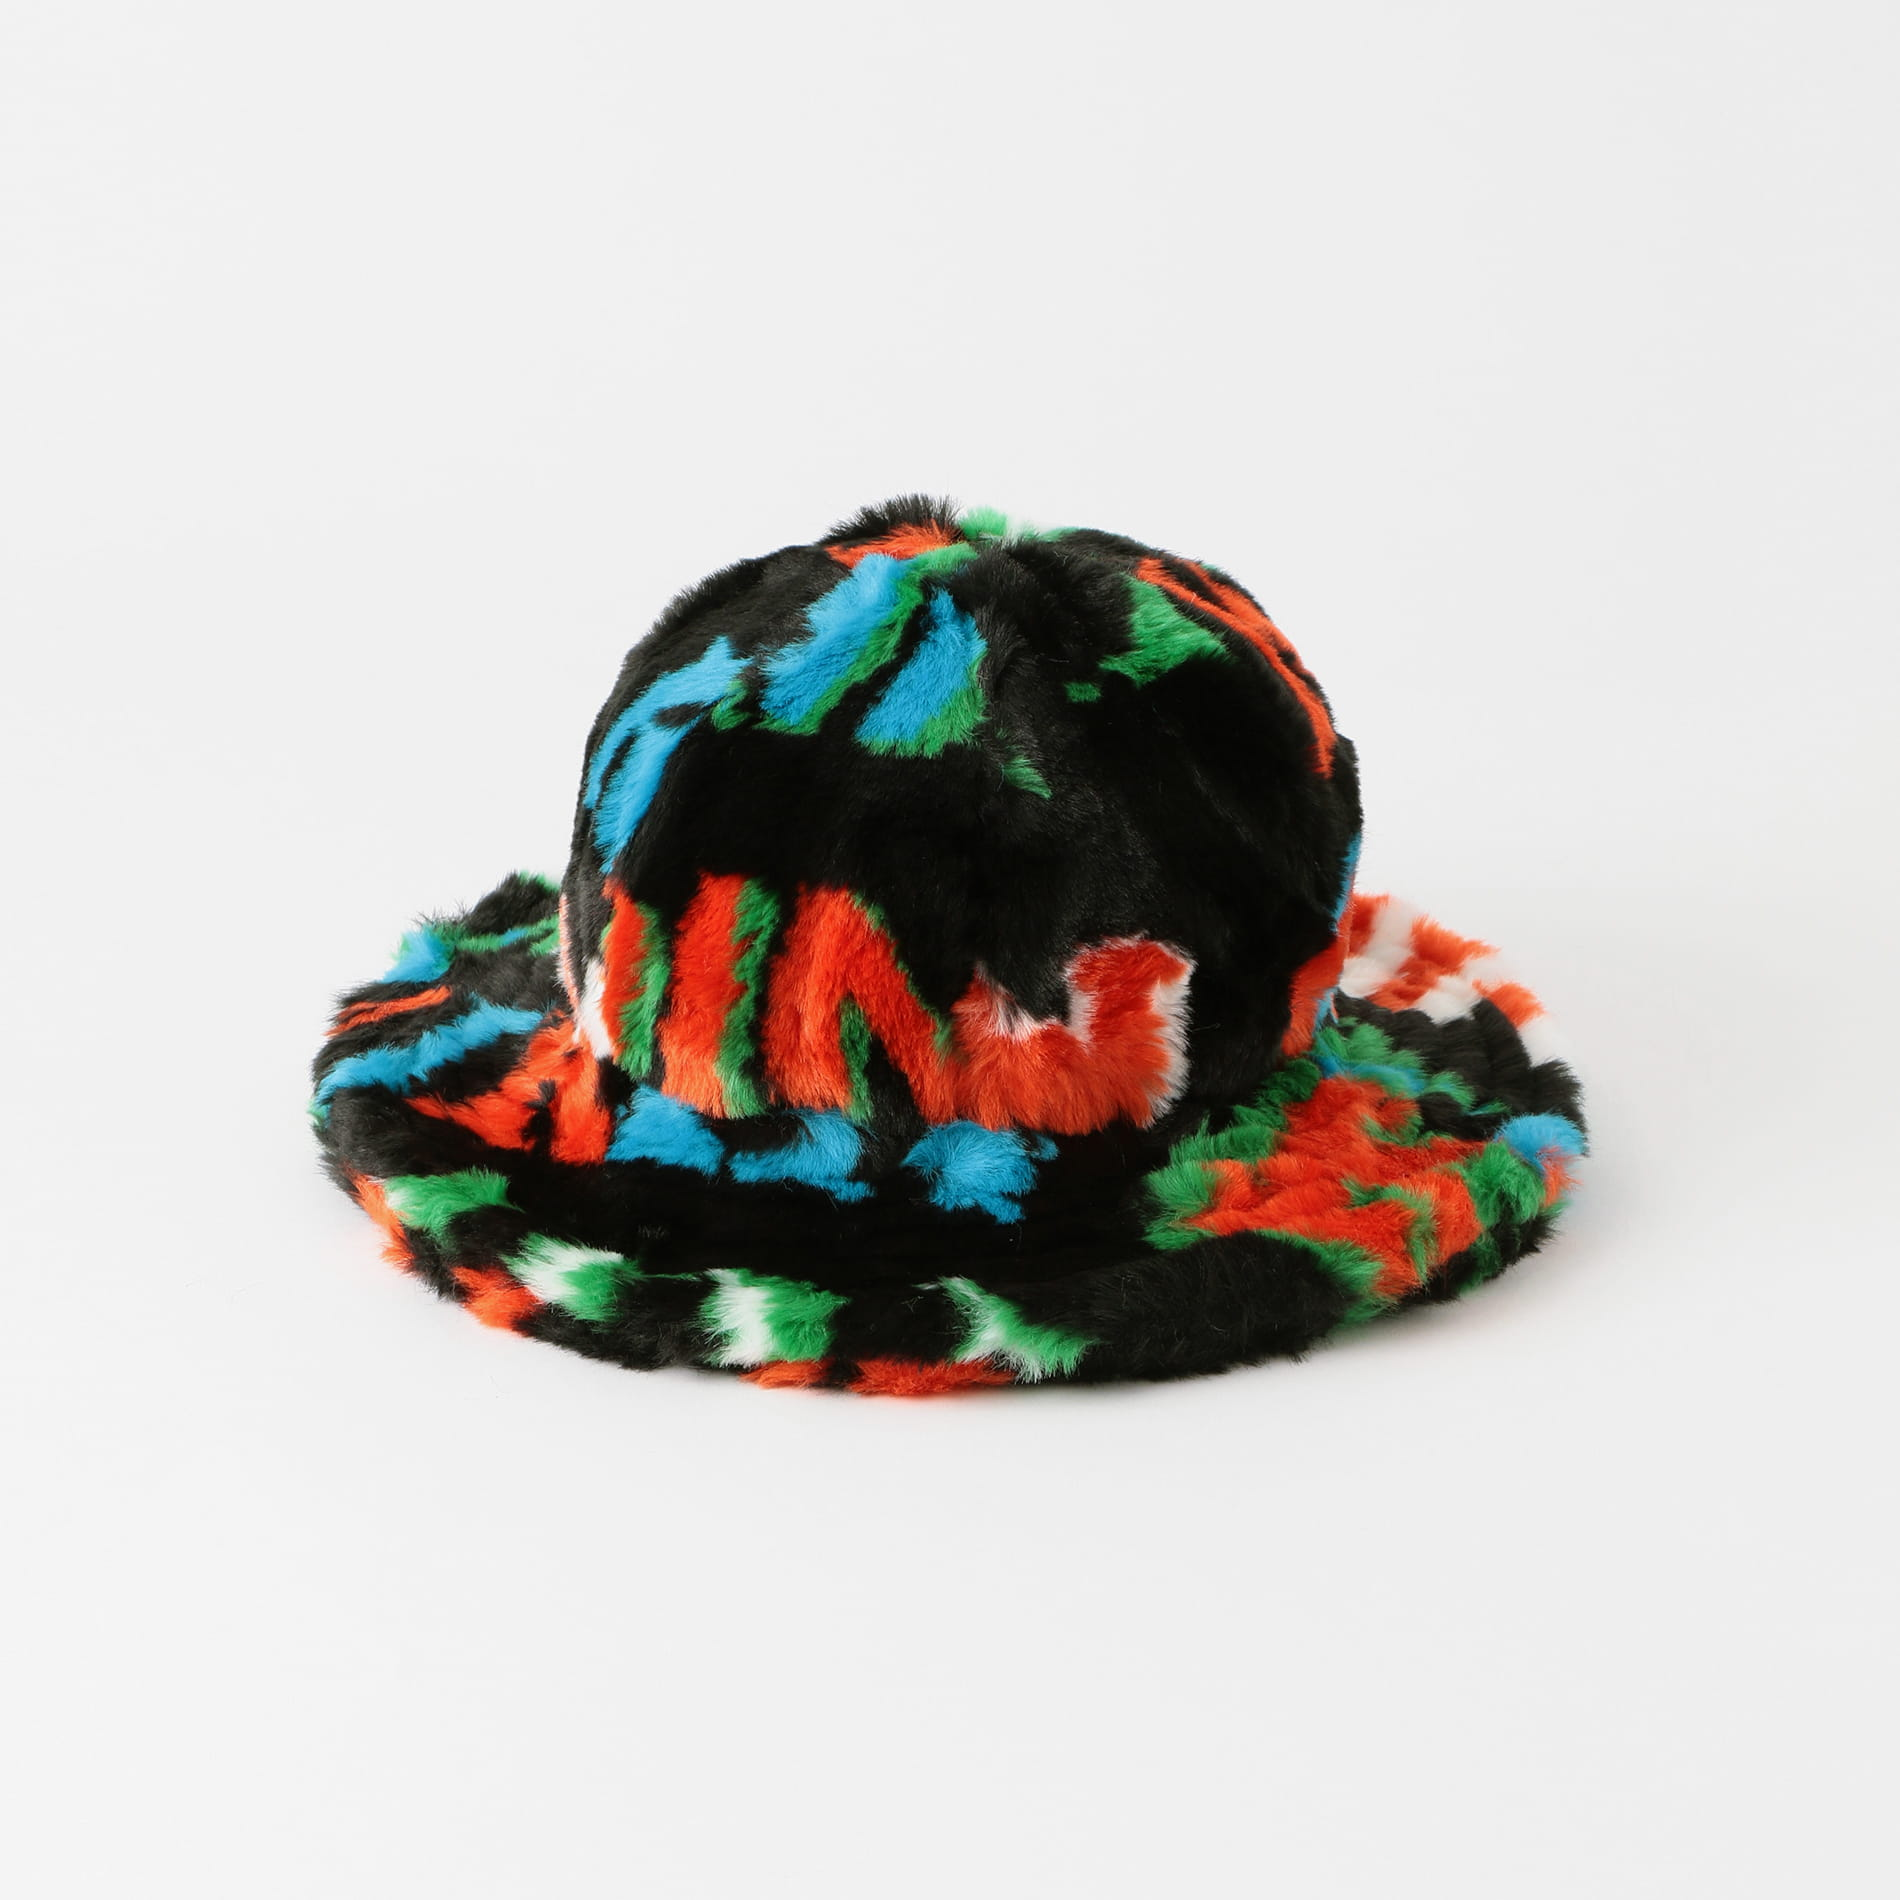 【KIRIN】WOMEN BIG TYPO FUR OVER CLOCHE HAT KWLA003F20FAB0011055 KWLF20-117